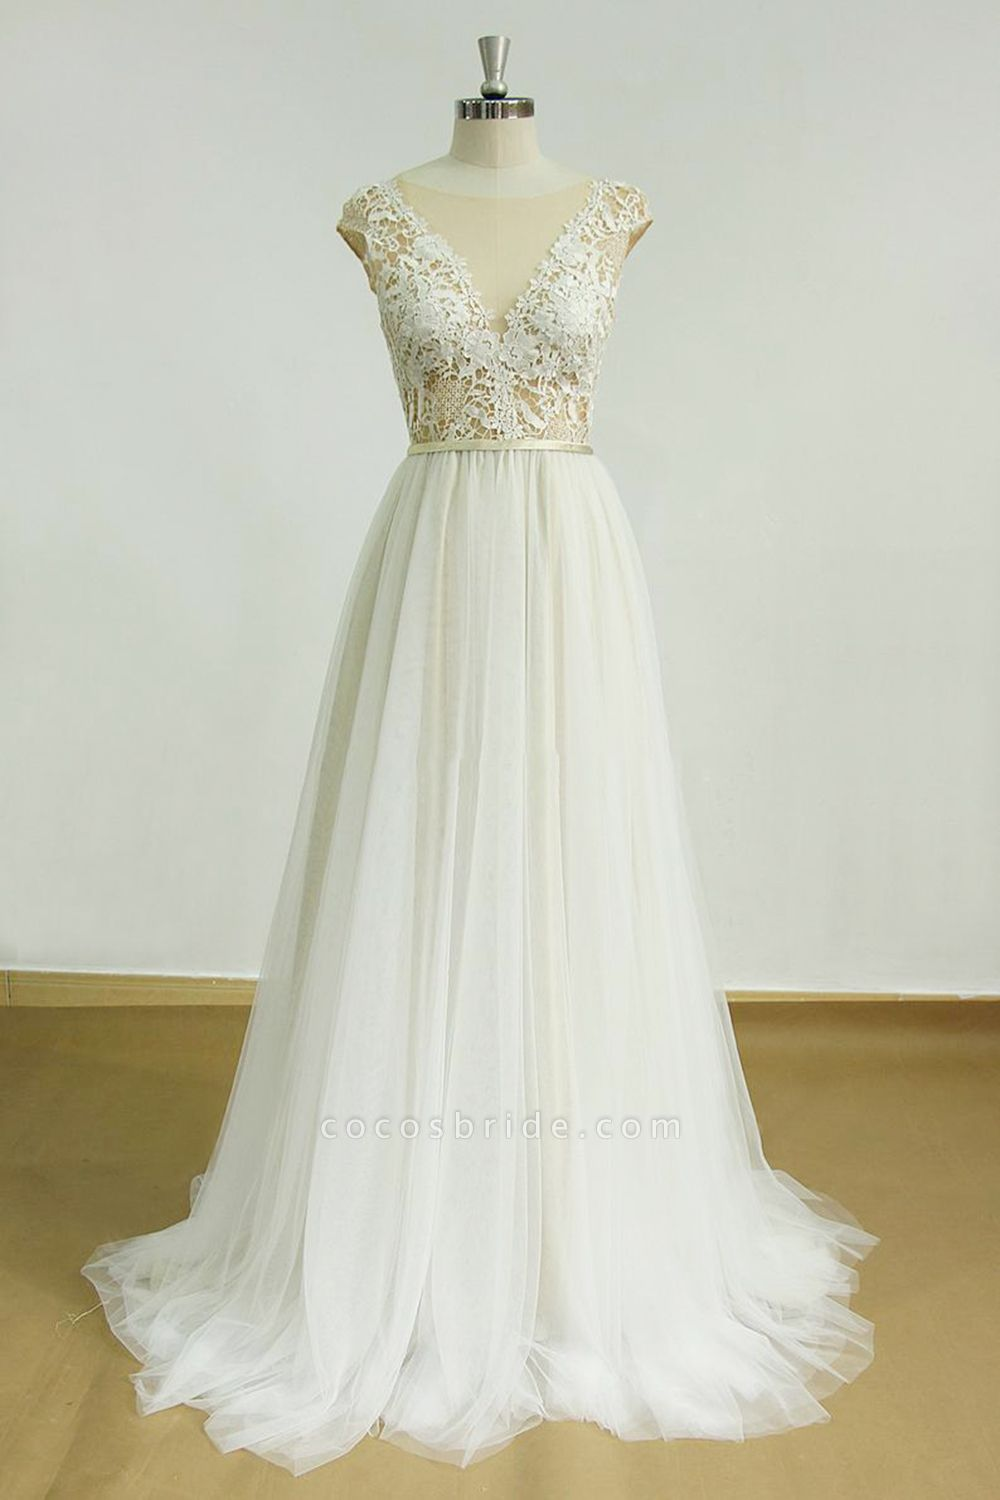 Chic Cap Sleeve Lace Tulle A-line Wedding Dress